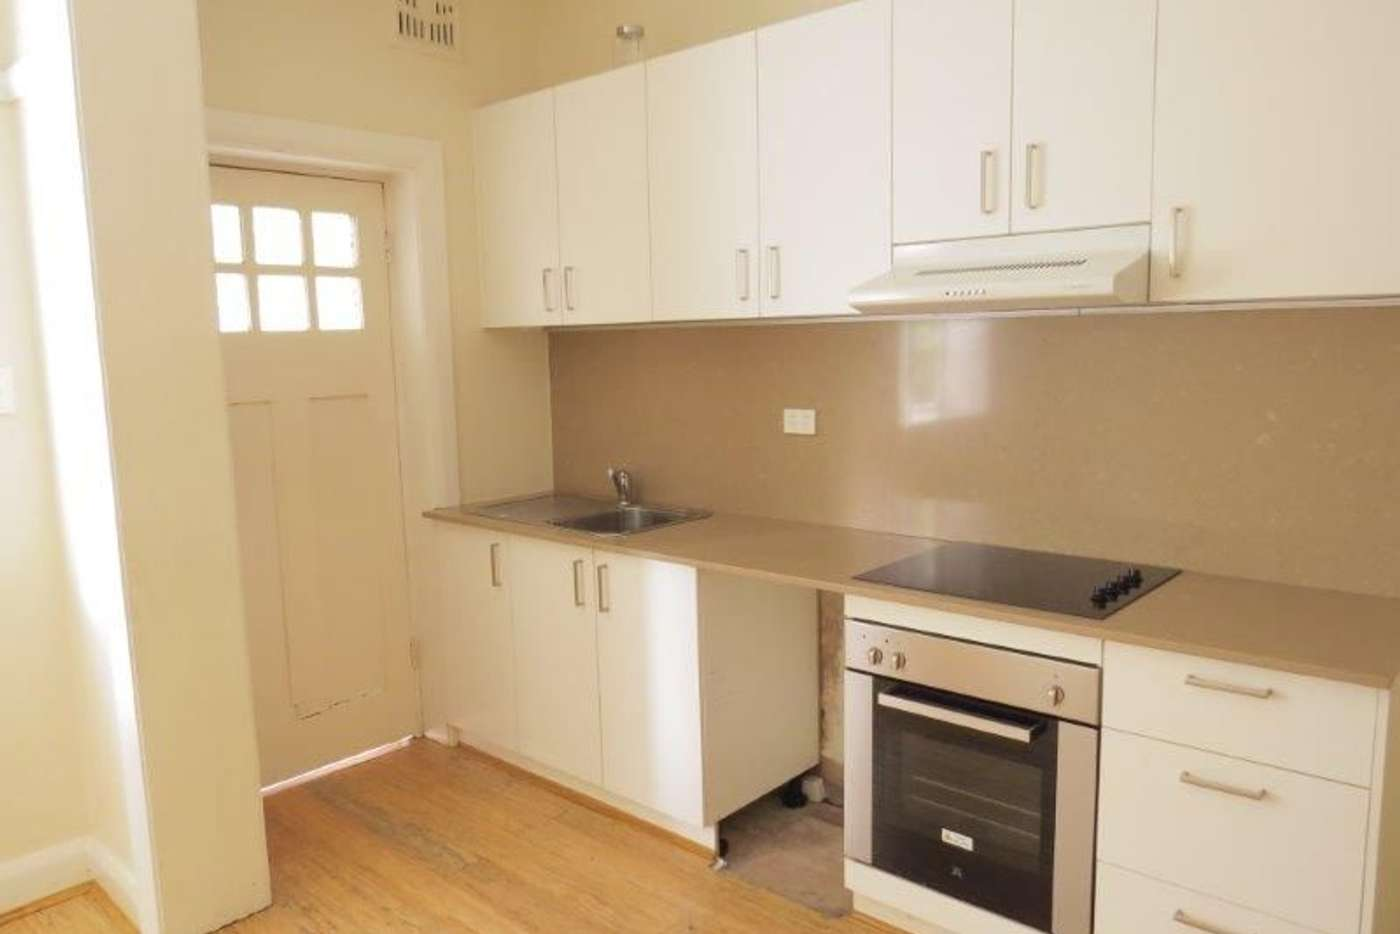 Main view of Homely apartment listing, 1/175 Walker Street, North Sydney NSW 2060